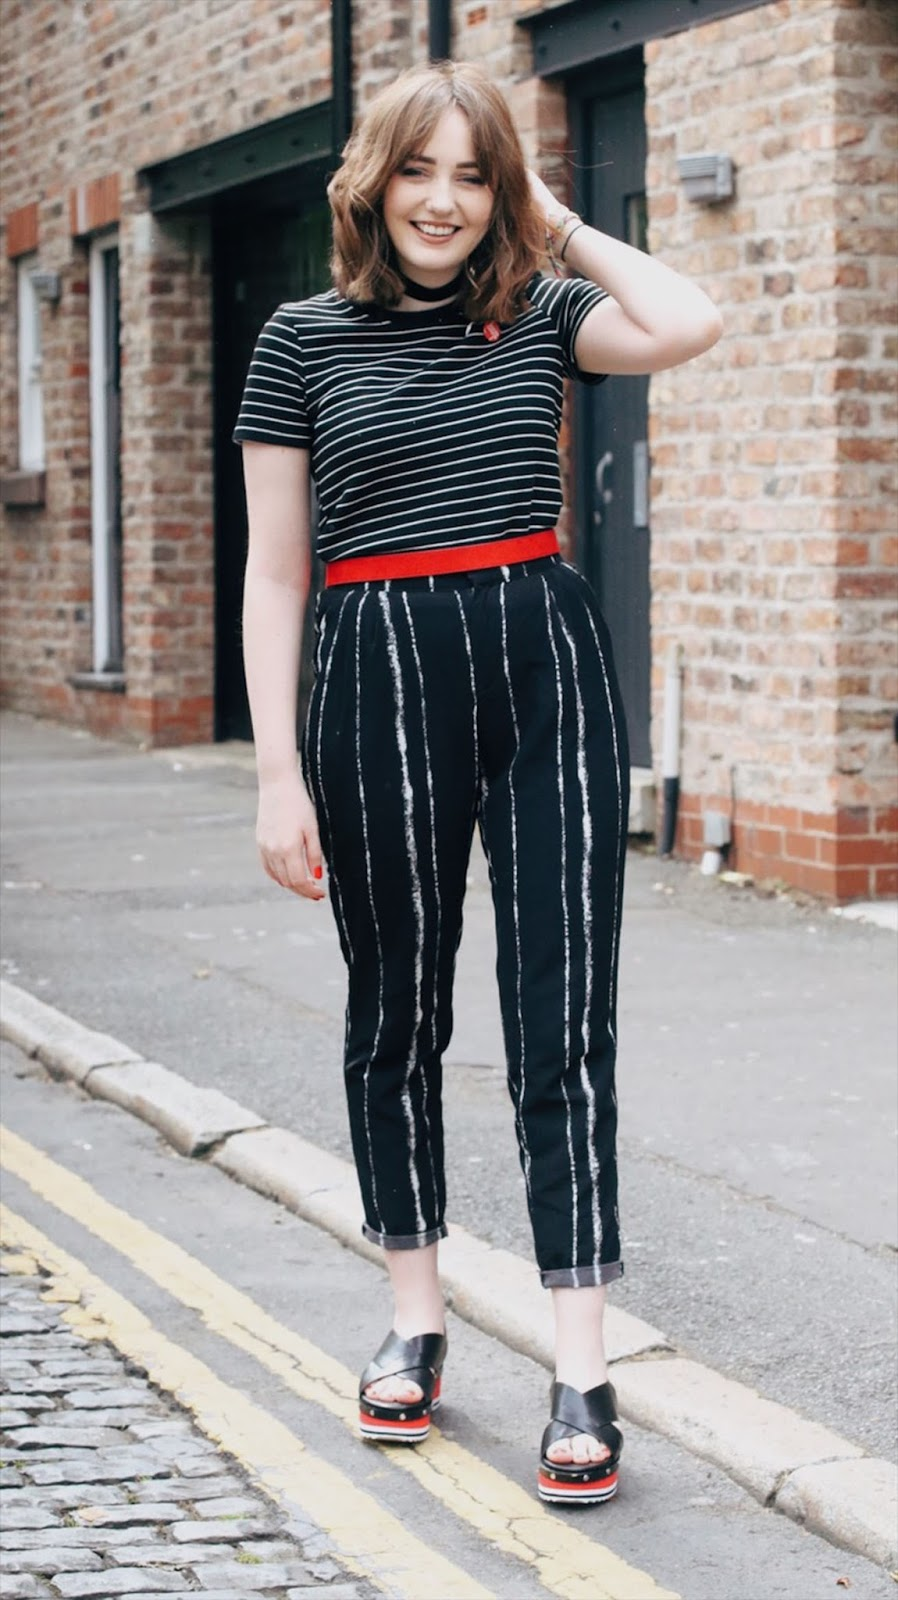 Zara platform sandals, striped t-shirt and trousers: Liverpool fashion blog outfit